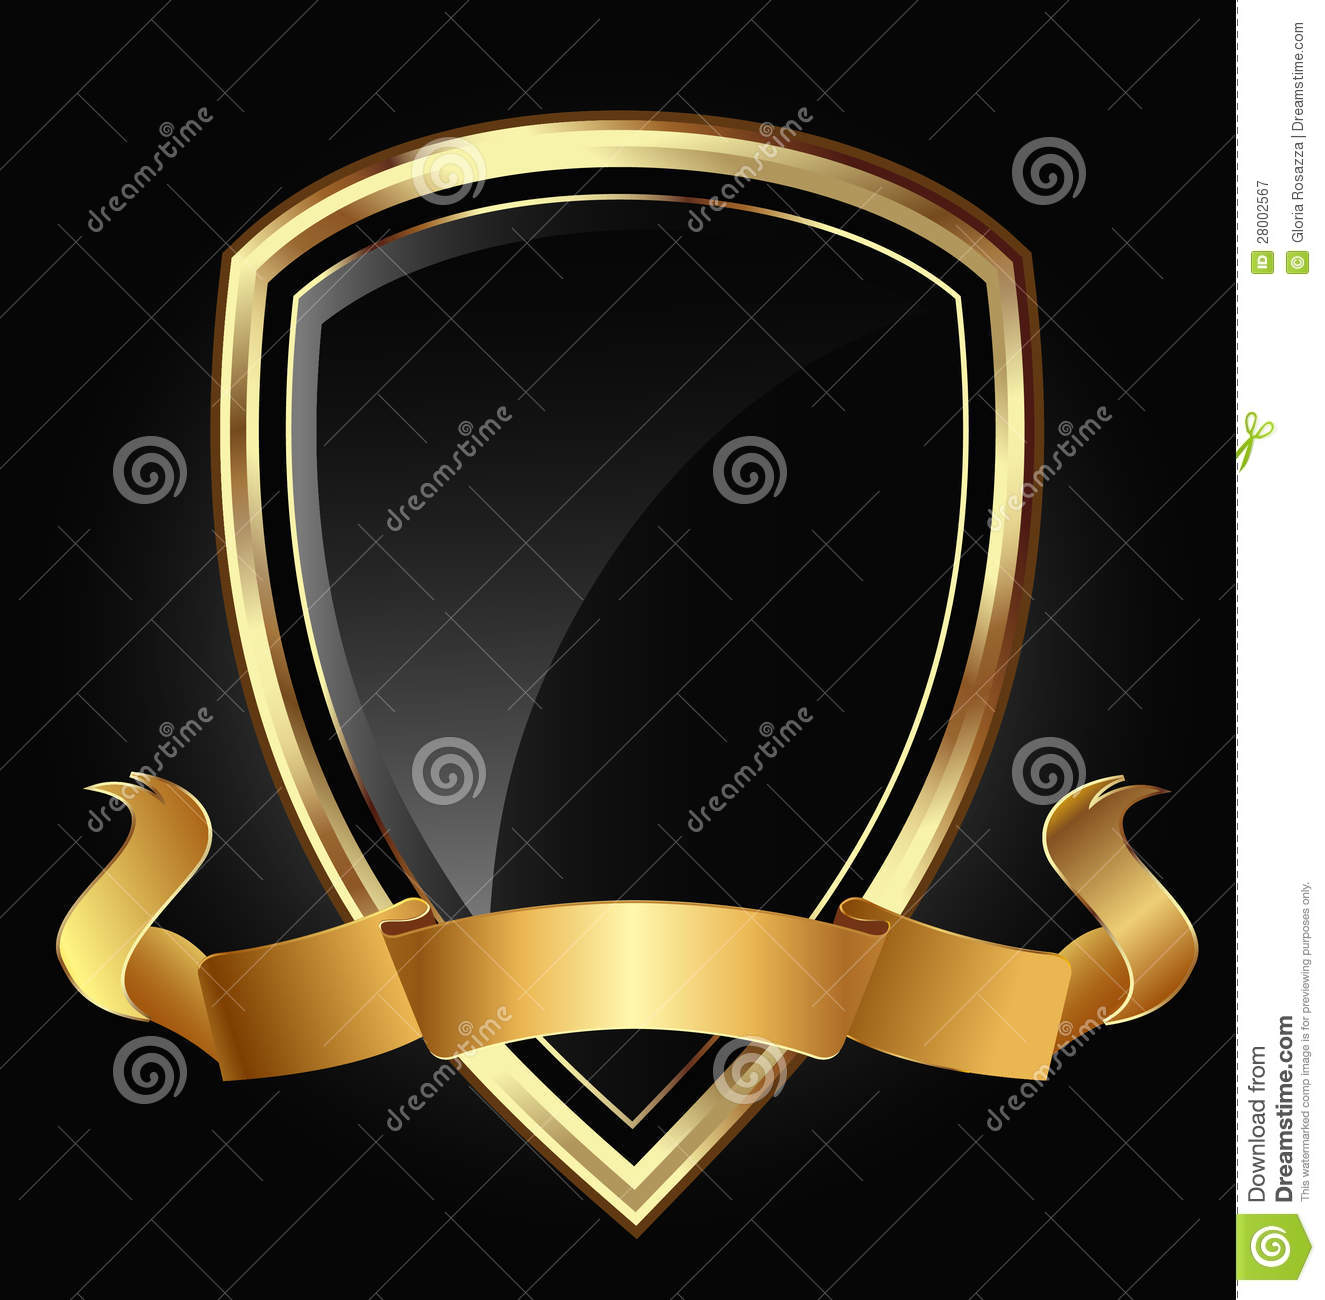 Shield design set royalty free stock photos image 5051988 - Gold Shield And Ribbon Royalty Free Stock Photography